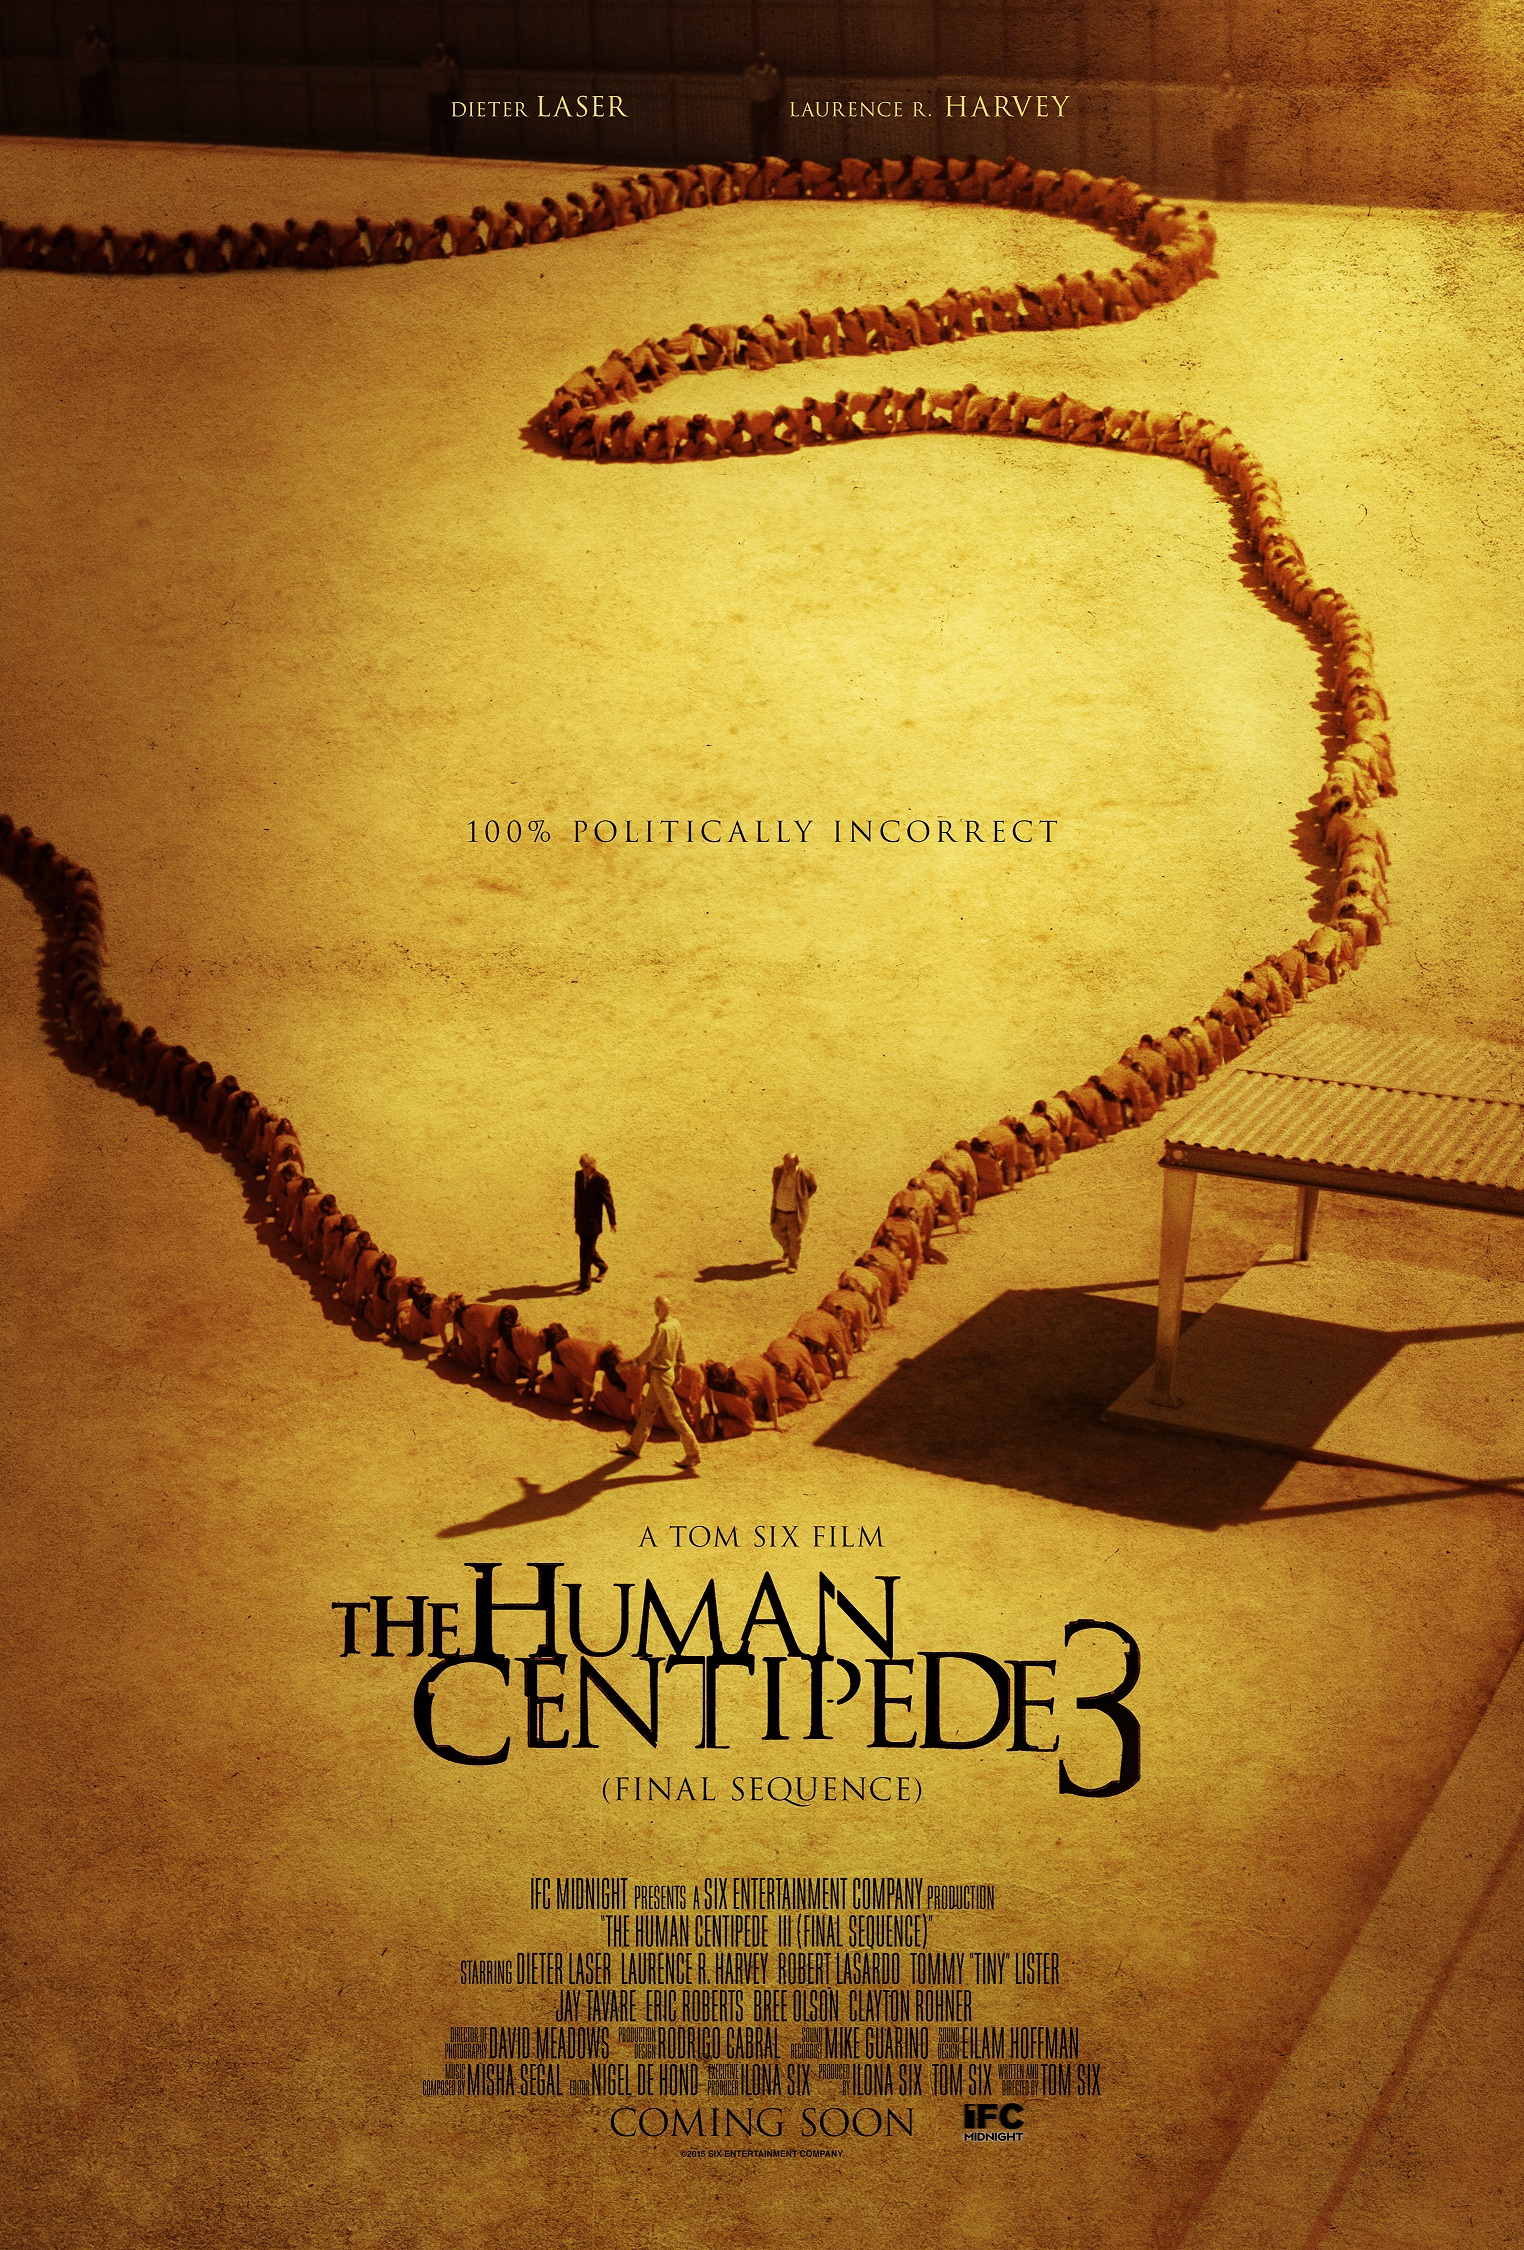 The Human Centipede III-Poster-06Maio2015-02